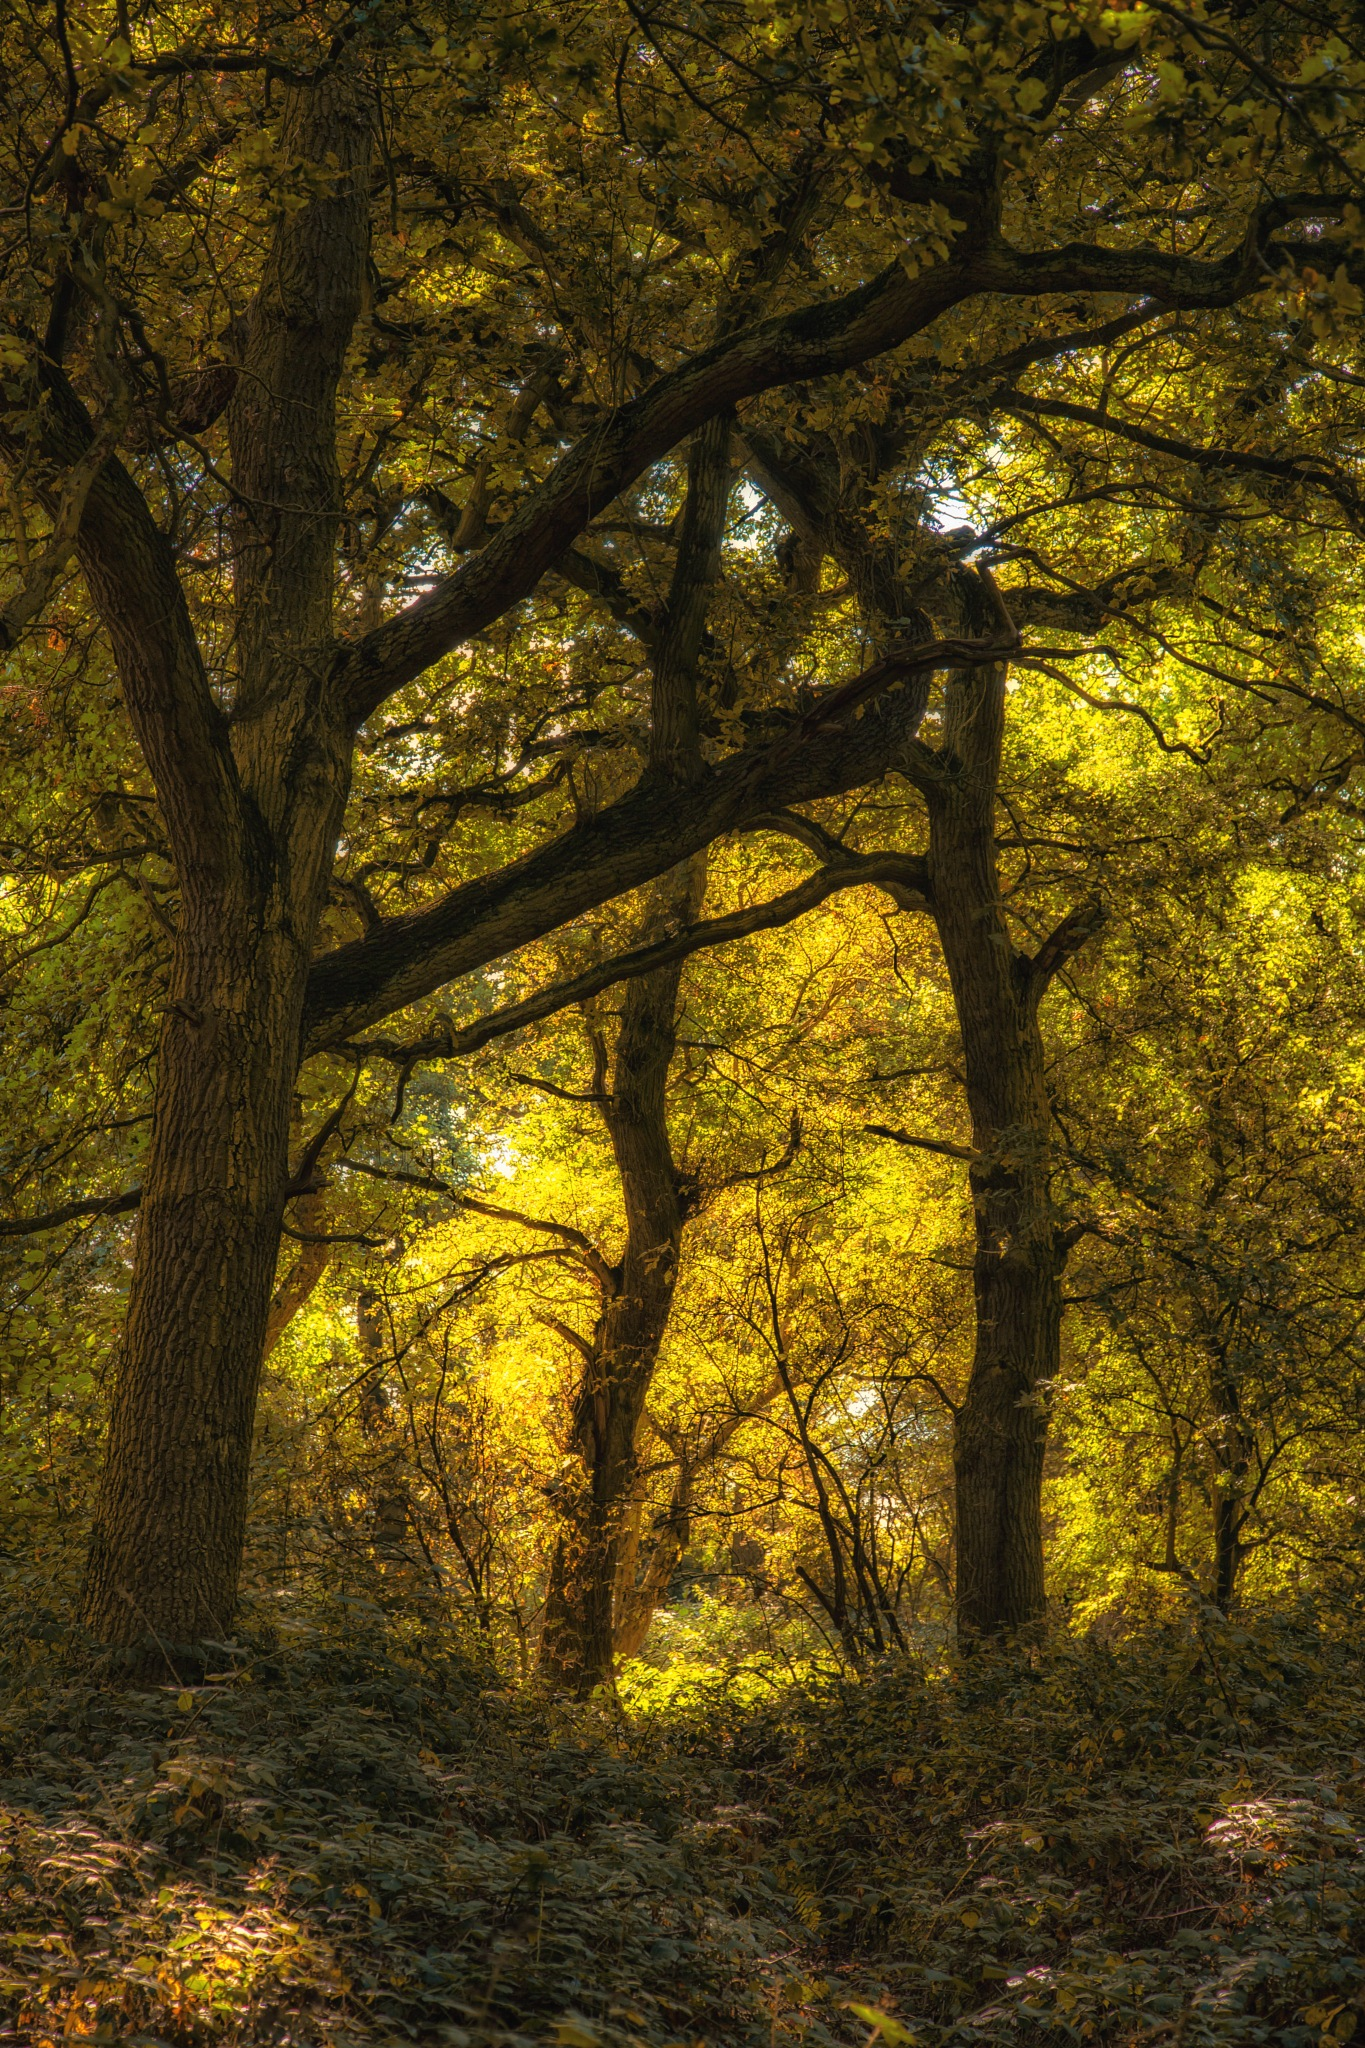 Golden by Sarah Walters